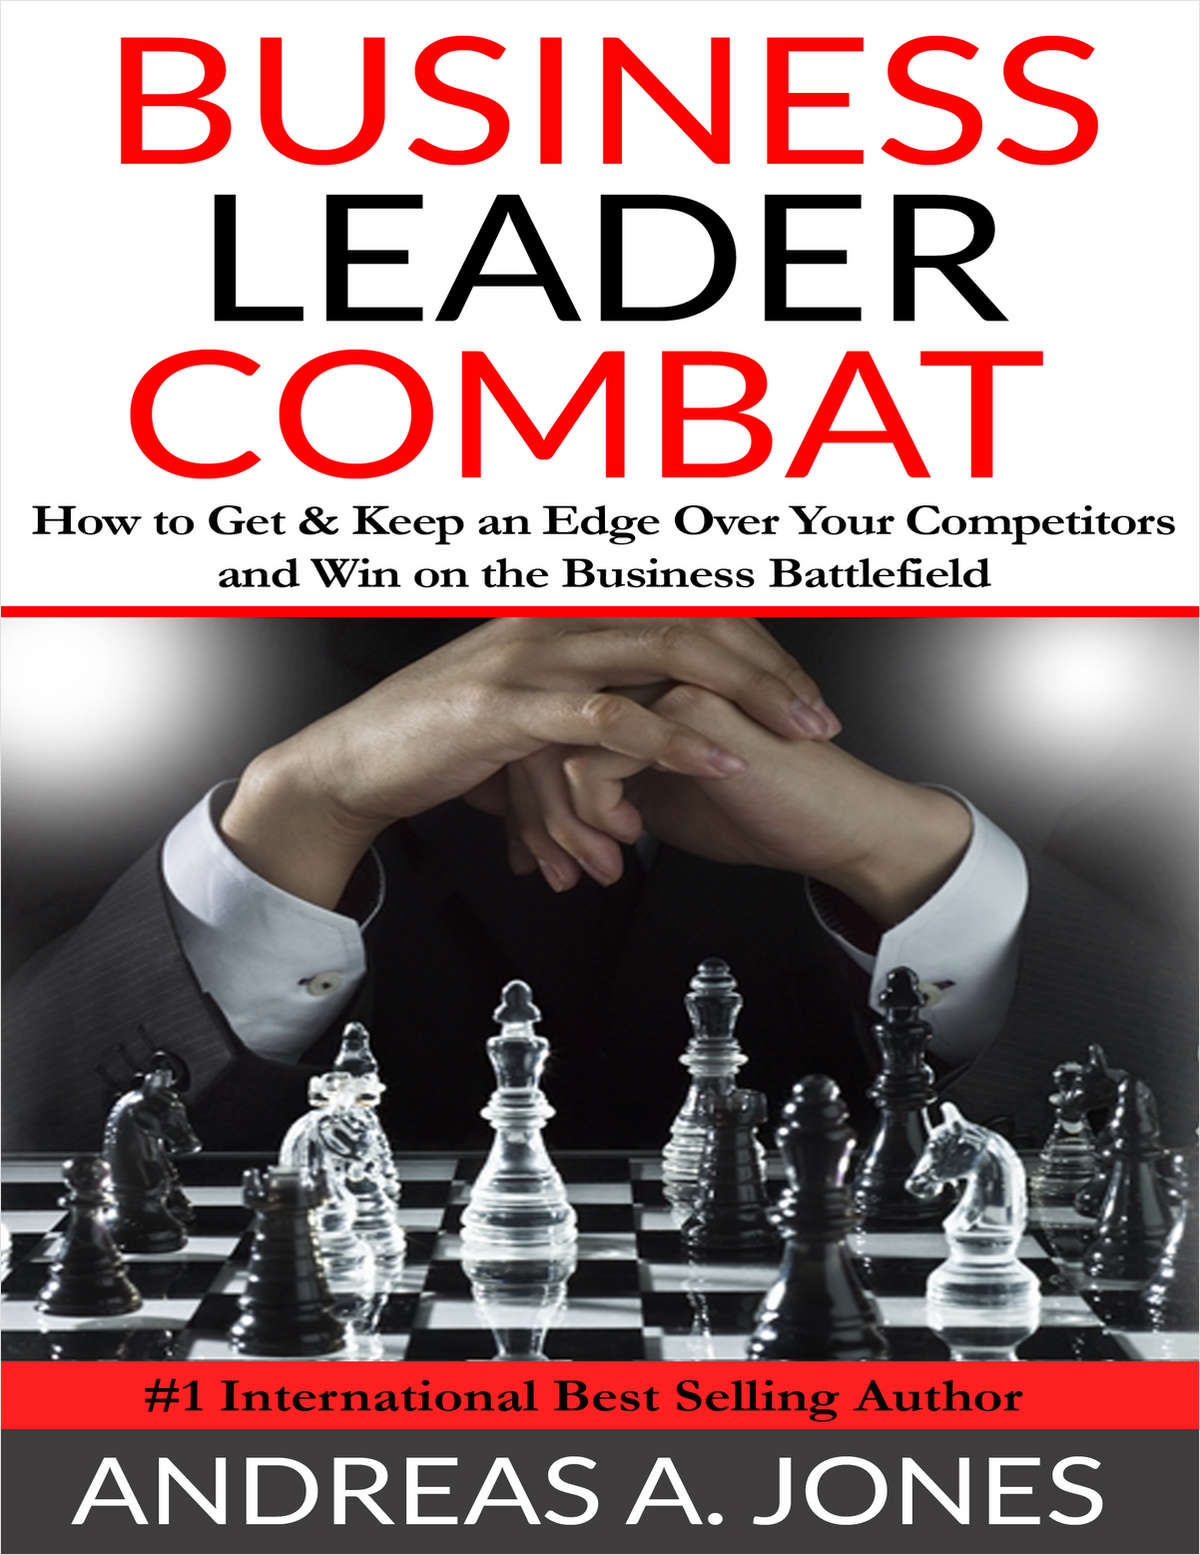 Business Leader Combat - How To Get and Keep An Edge Over Your Competitors and Win On The Business Battlefield